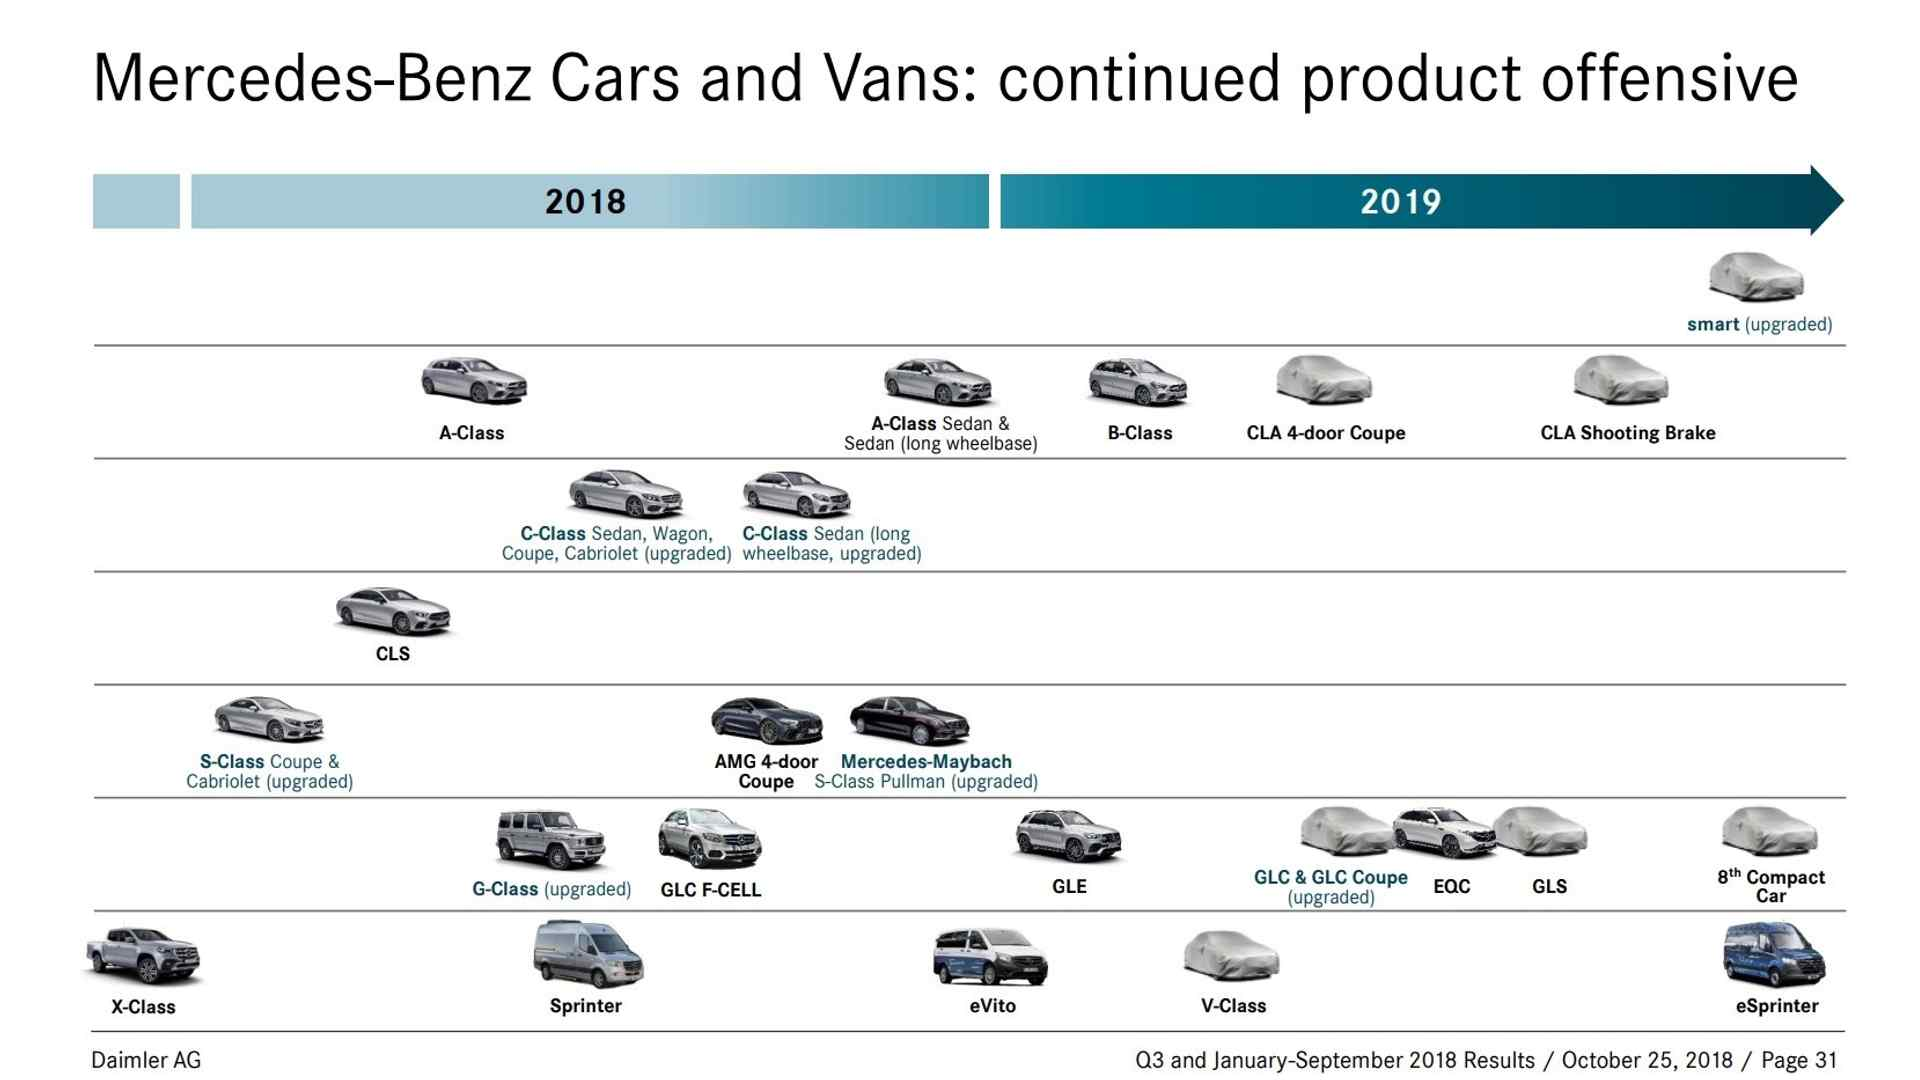 2019 Mercedes Roadmap Quietly Revealed: Here's What's Coming